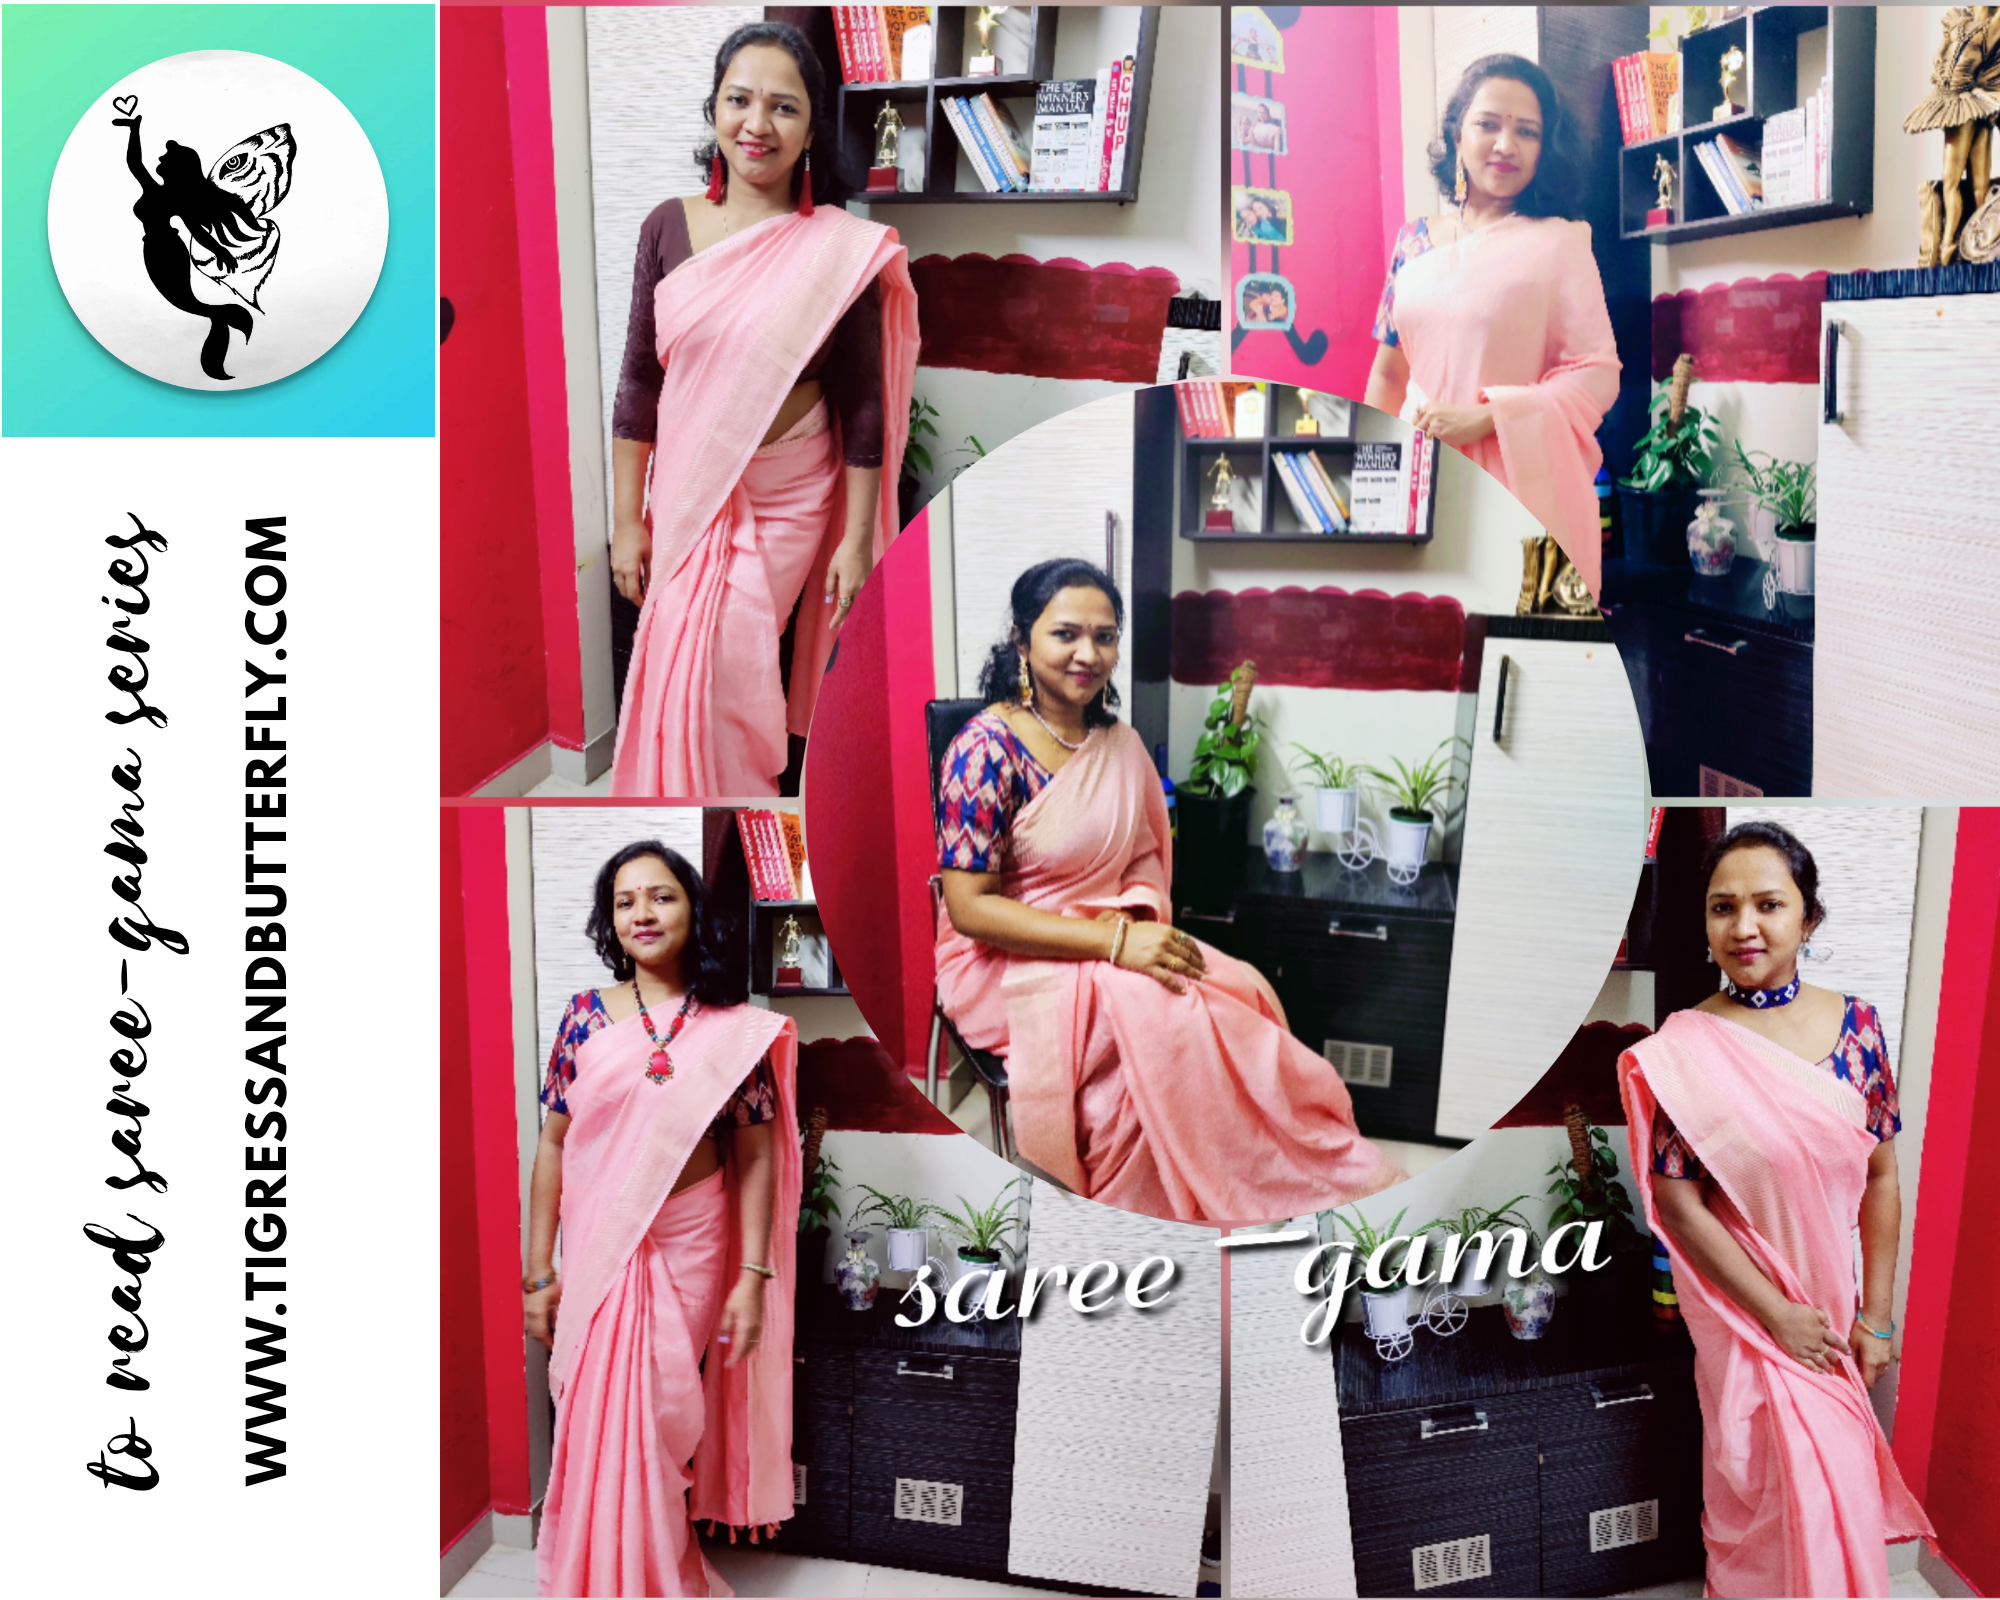 Saree-gama Knitted jute plain saree